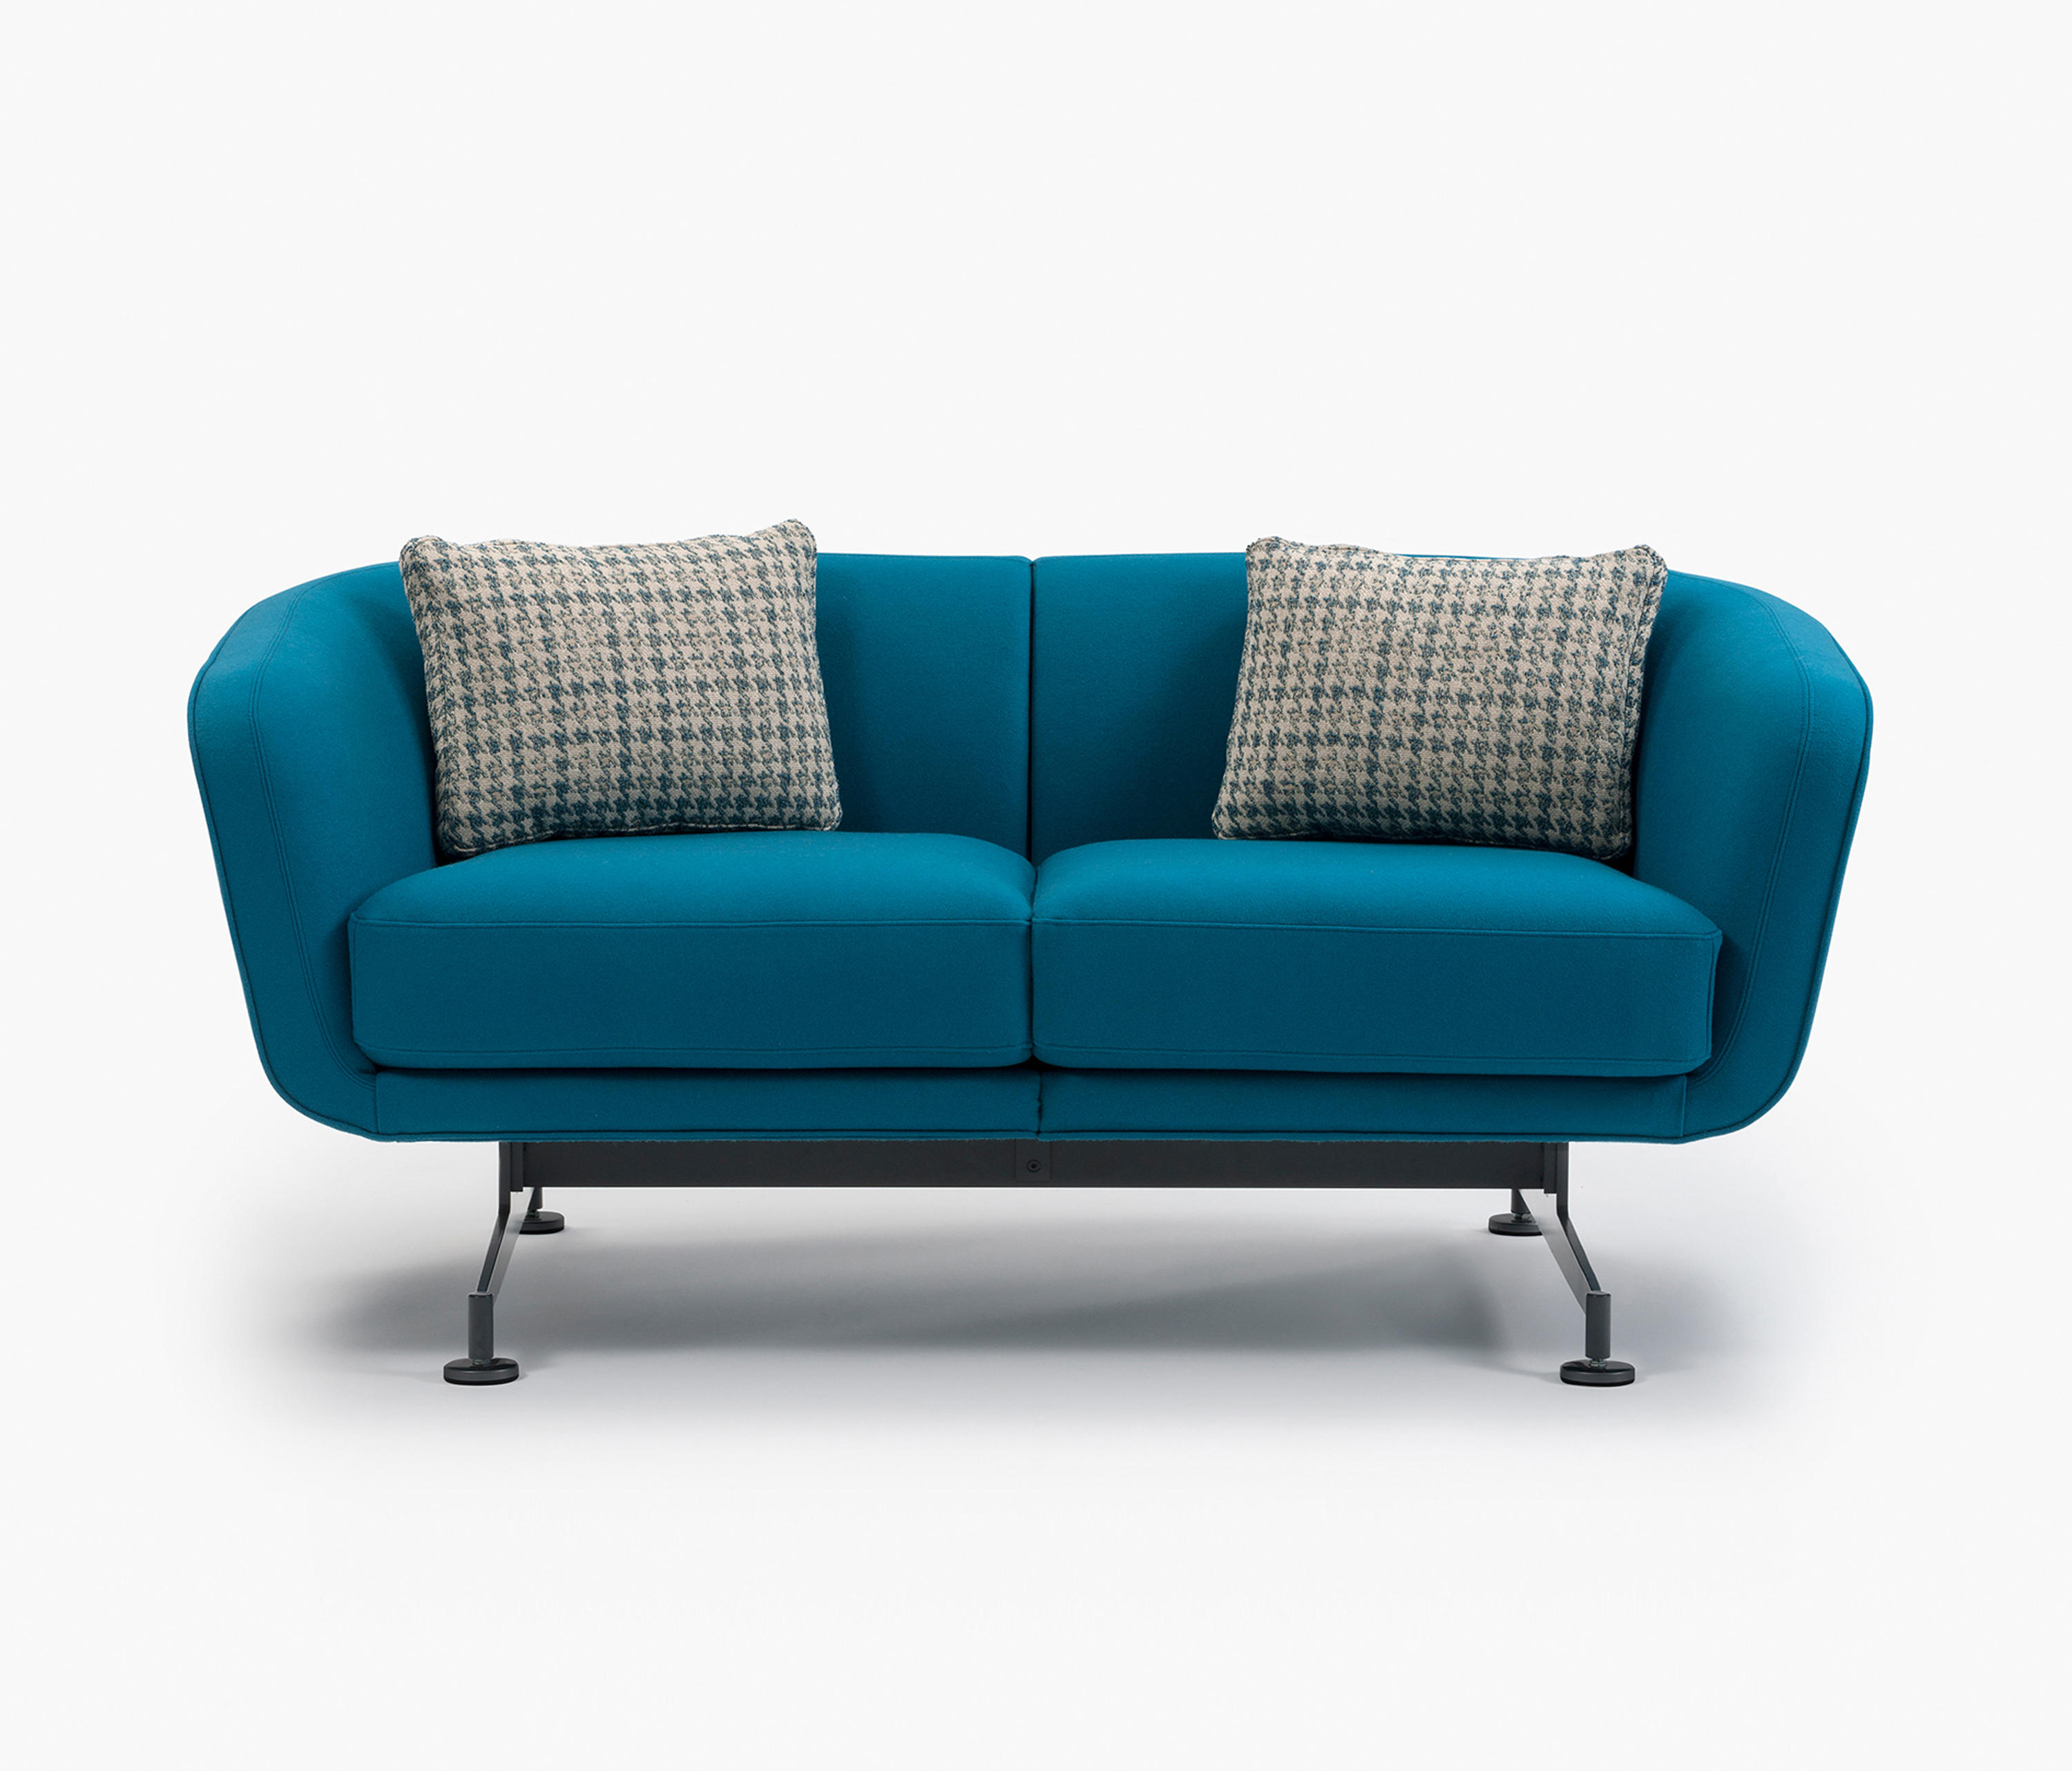 Betty Boop By Kartell Sofas